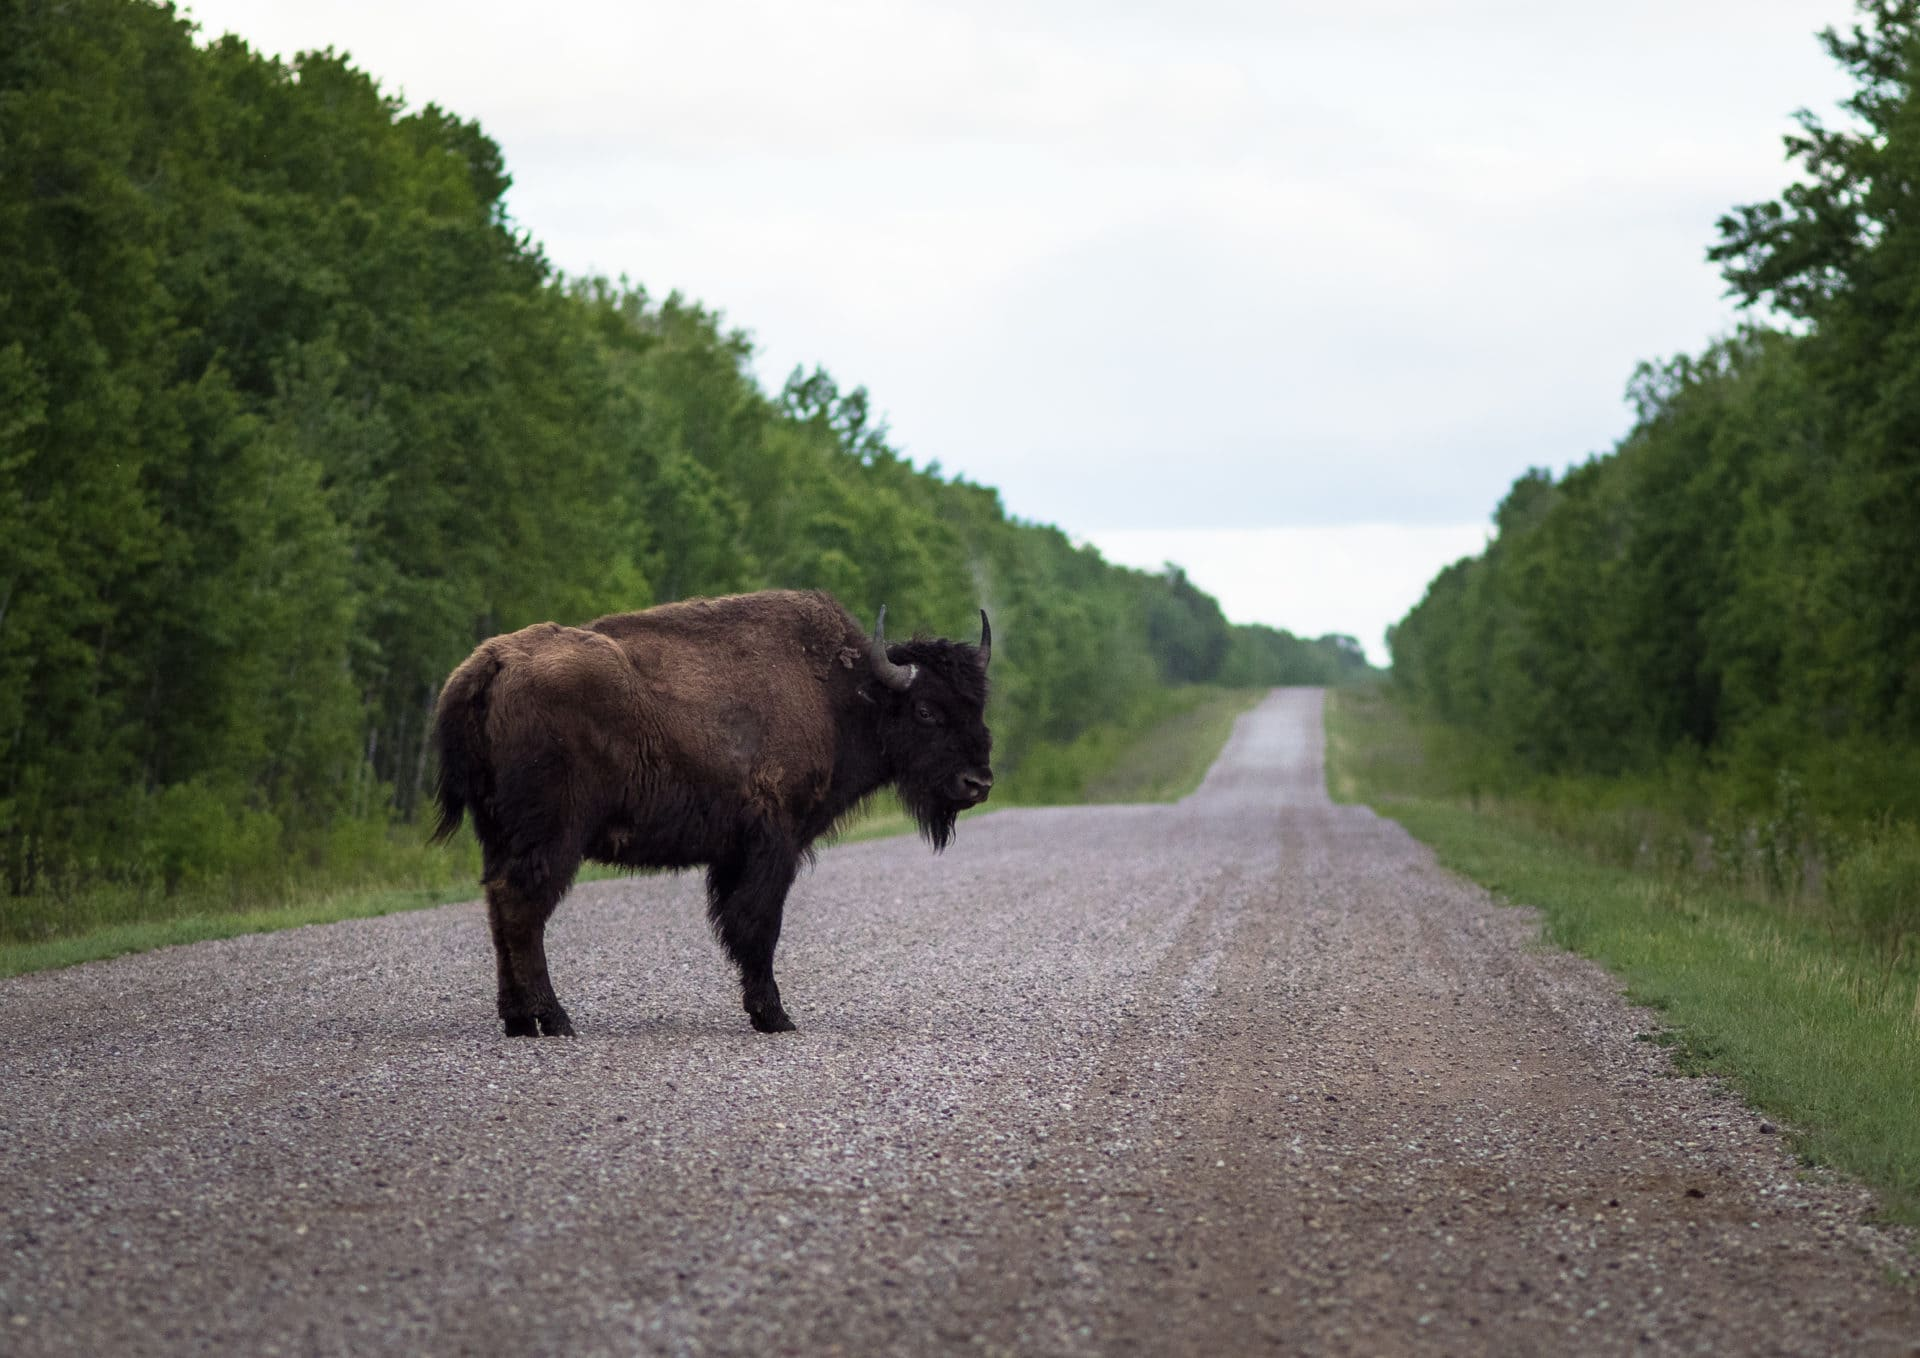 Bison in Wood Buffalo National Park Louis Bockner